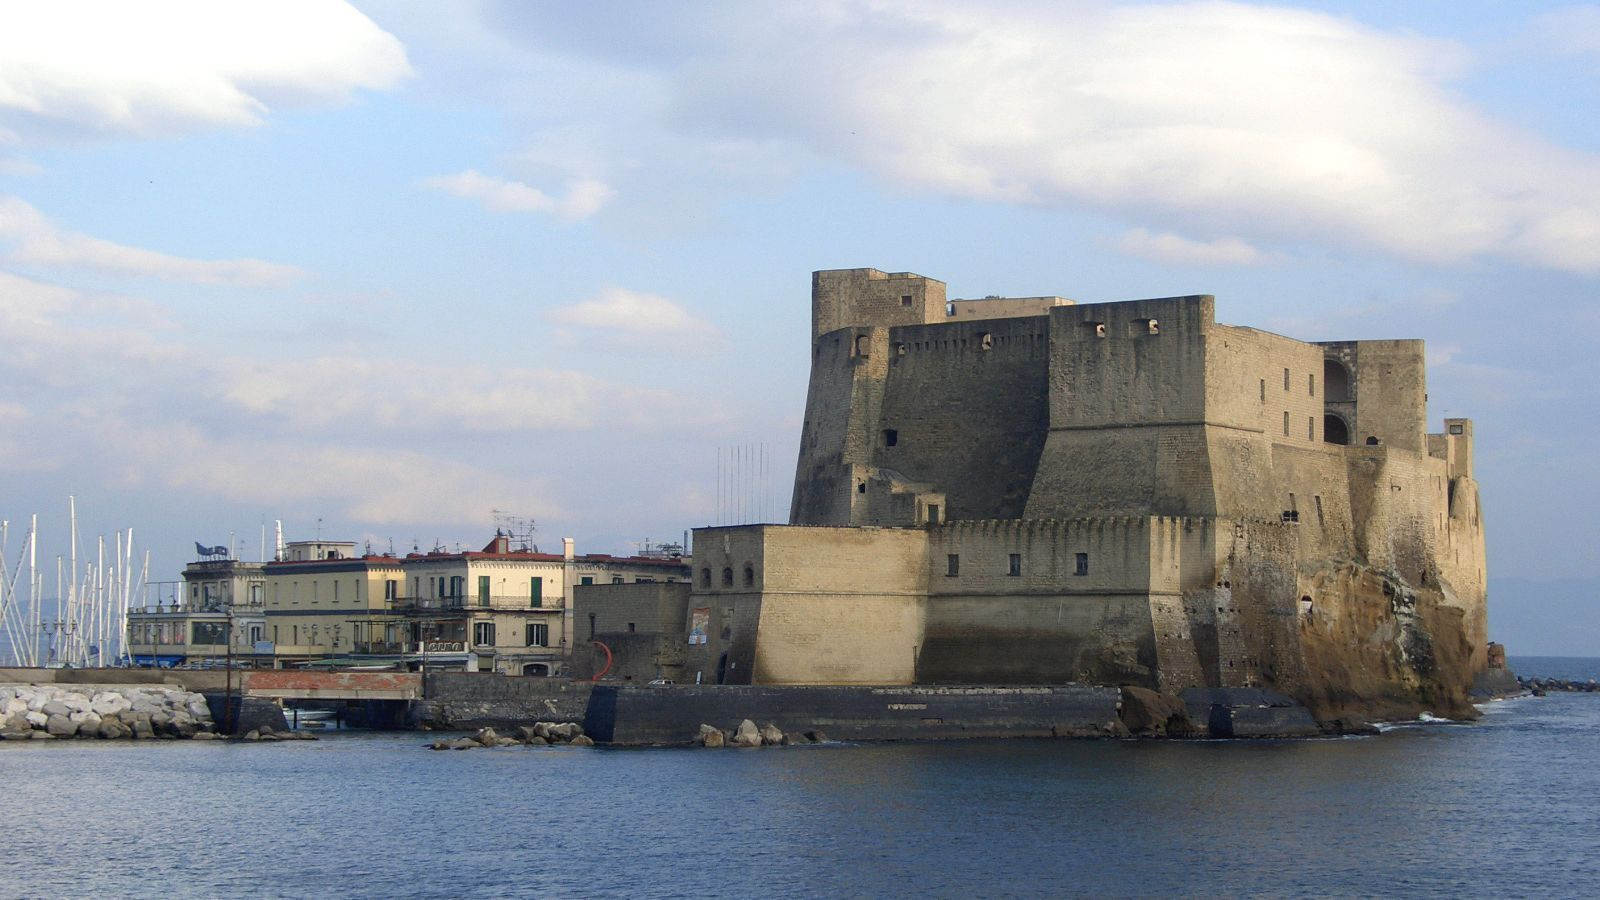 Castle where Romulus Augustulus was exiled after being deposed